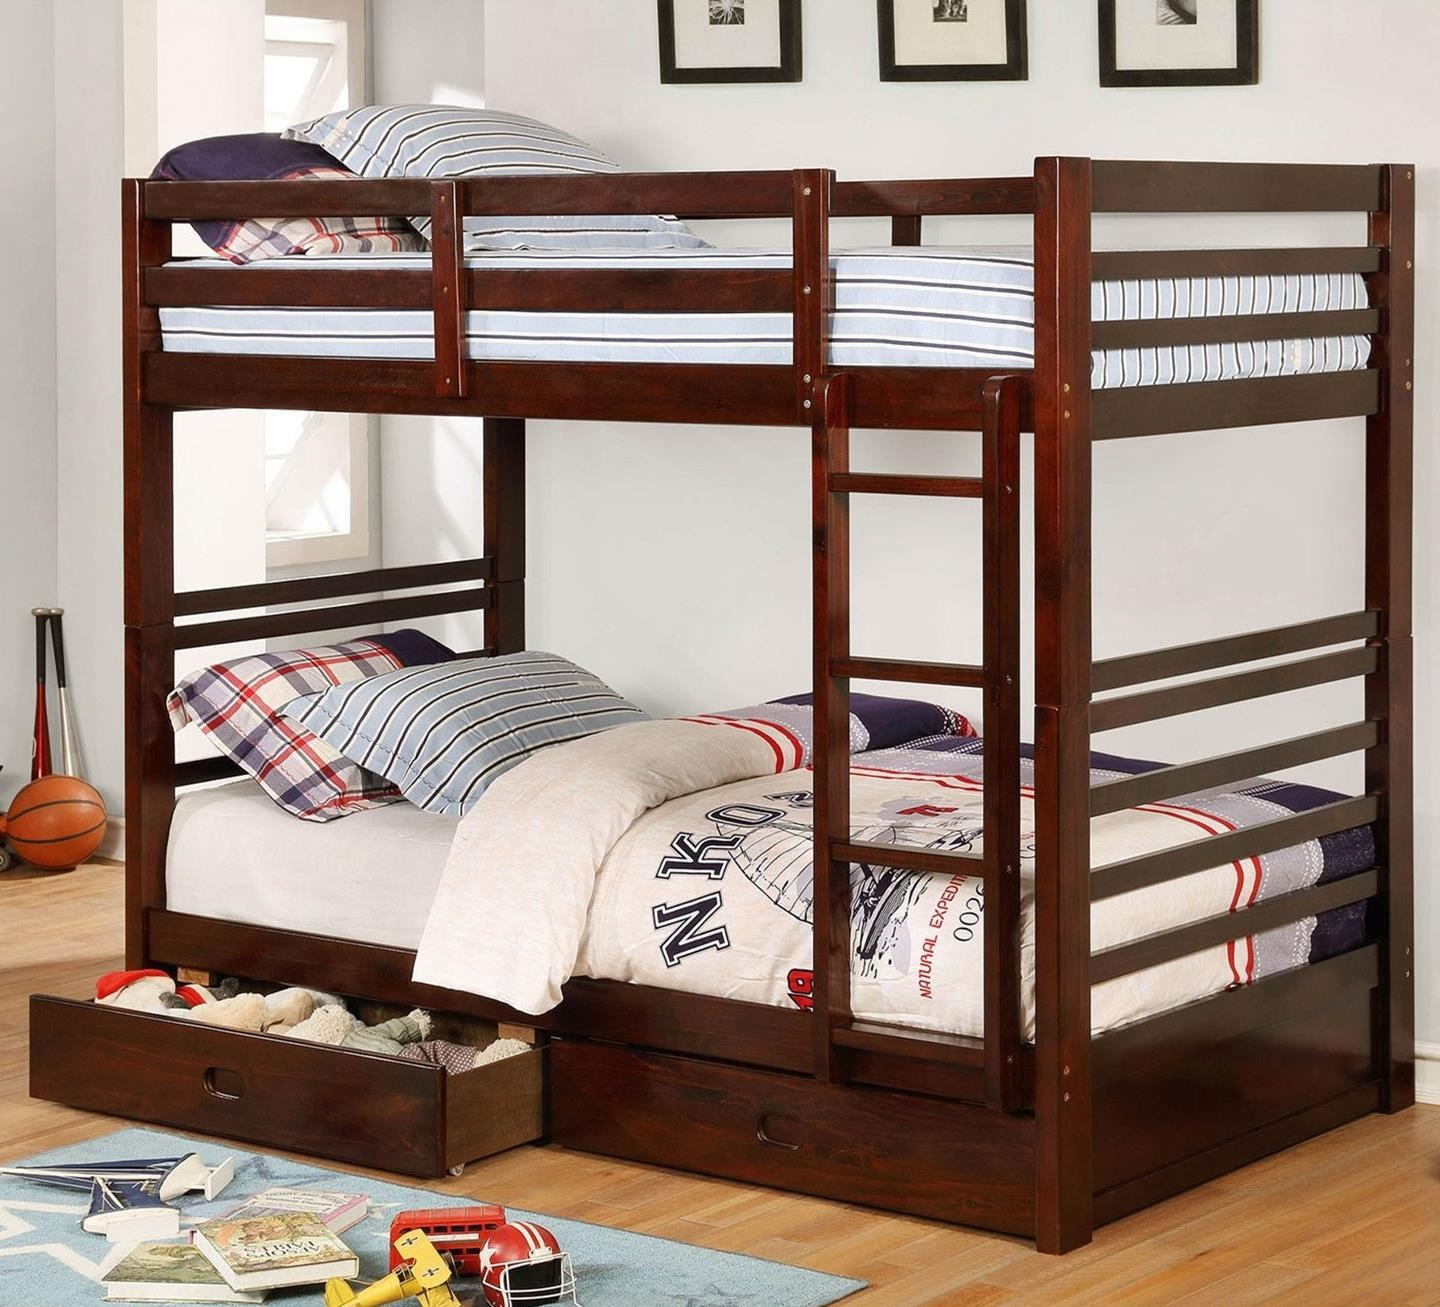 California IV Twin/Twin Bunk Bed by Furniture of America at Dream Home Interiors